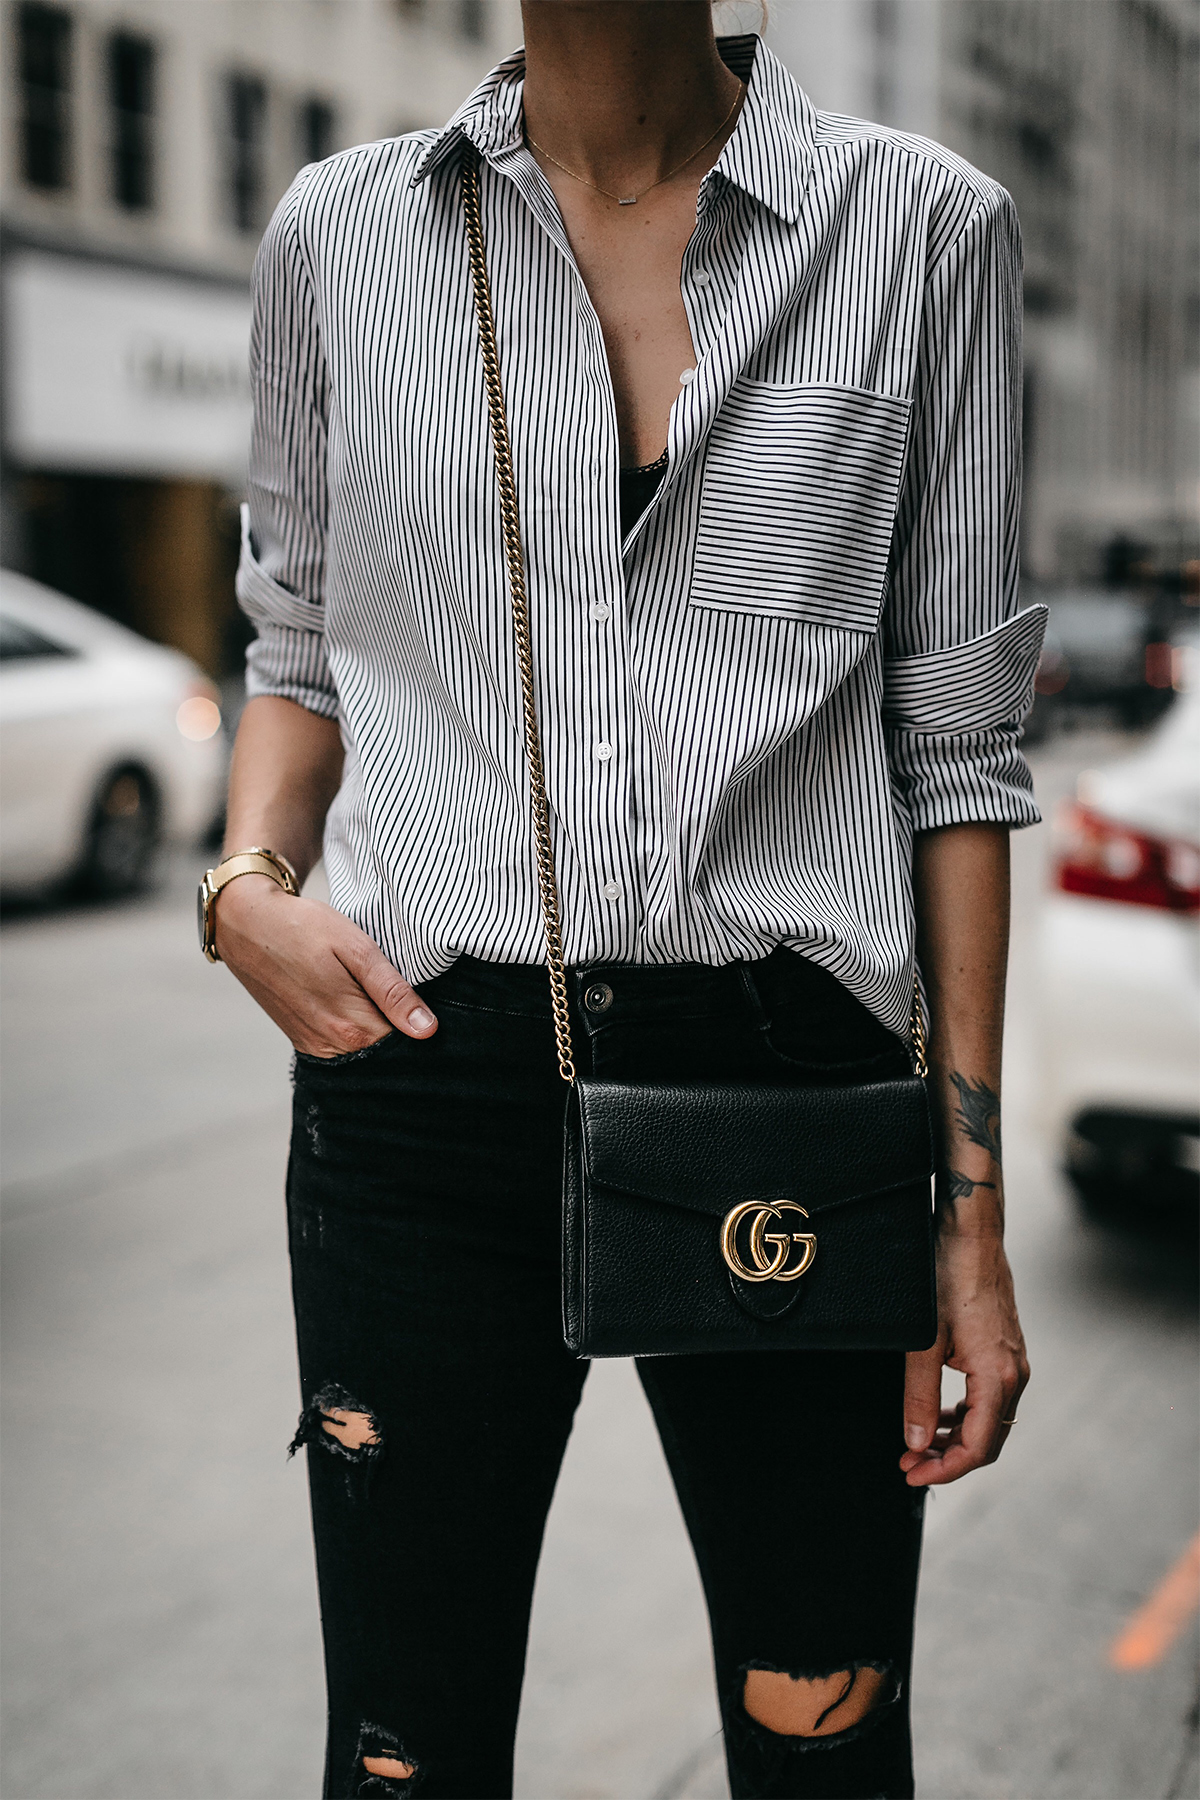 Black White Striped Button Down Shirt Gucci Handbag Black Ripped Skinny Jeans Fashion Jackson Dallas Blogger Fashion Blogger Street Styel